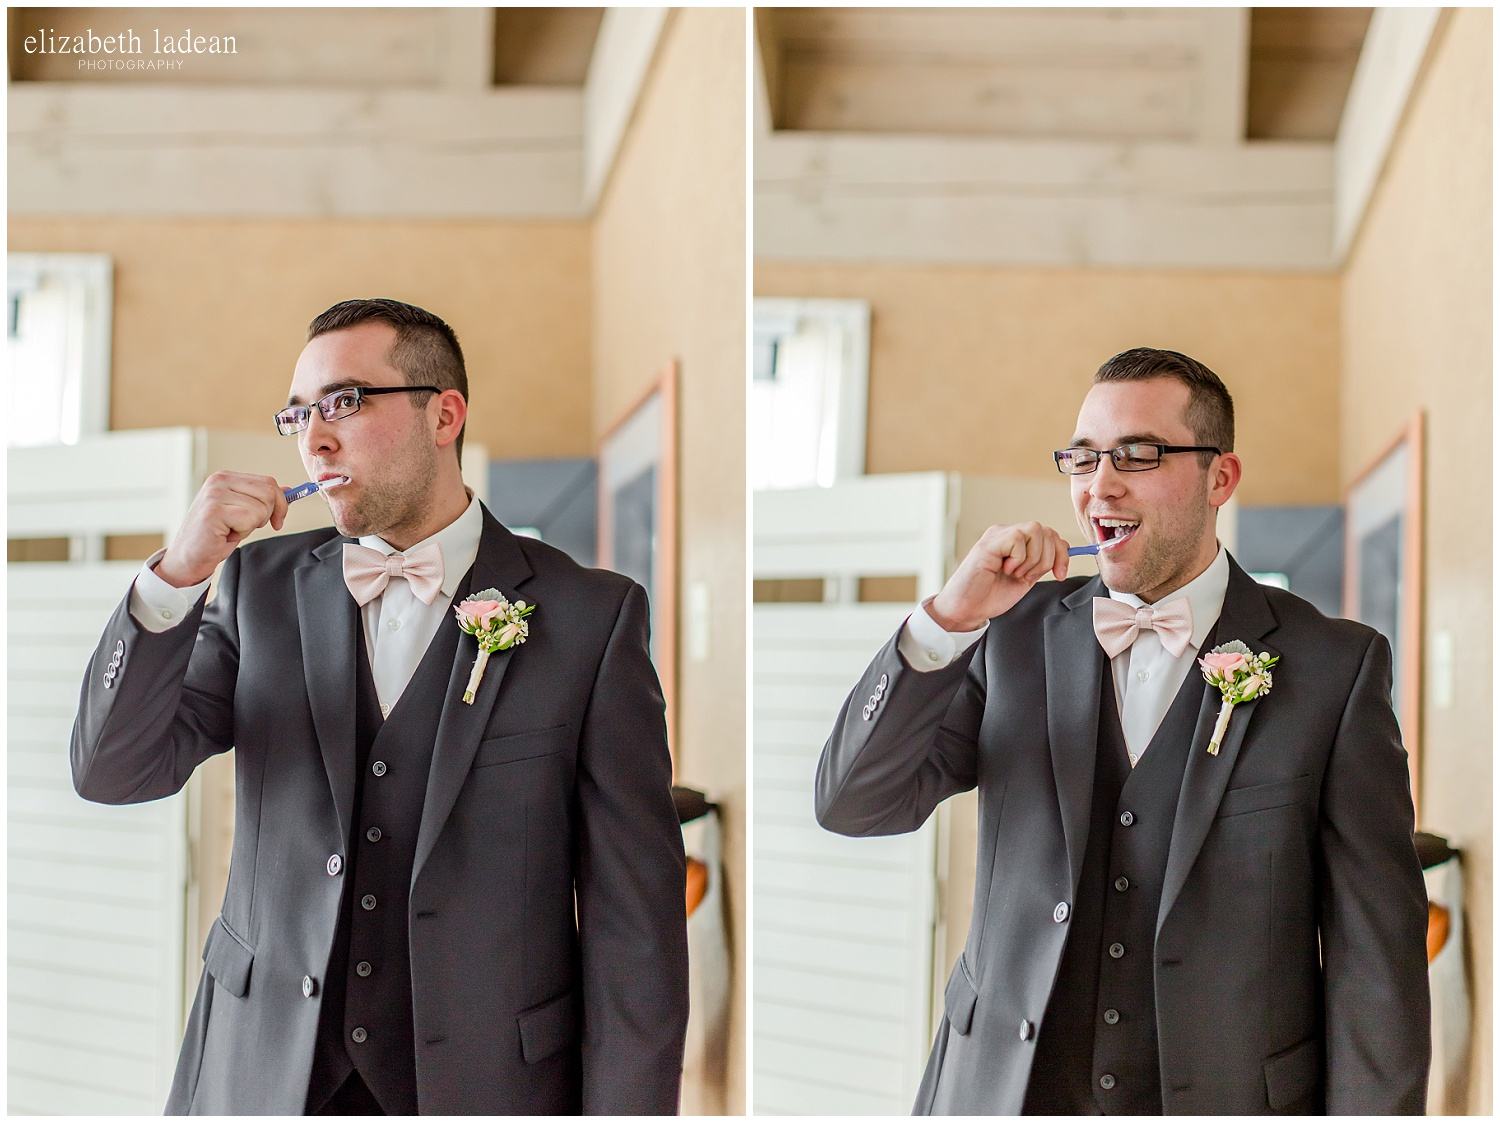 -behind-the-scenes-of-a-wedding-photographer-2018-elizabeth-ladean-photography-photo_3417.jpg